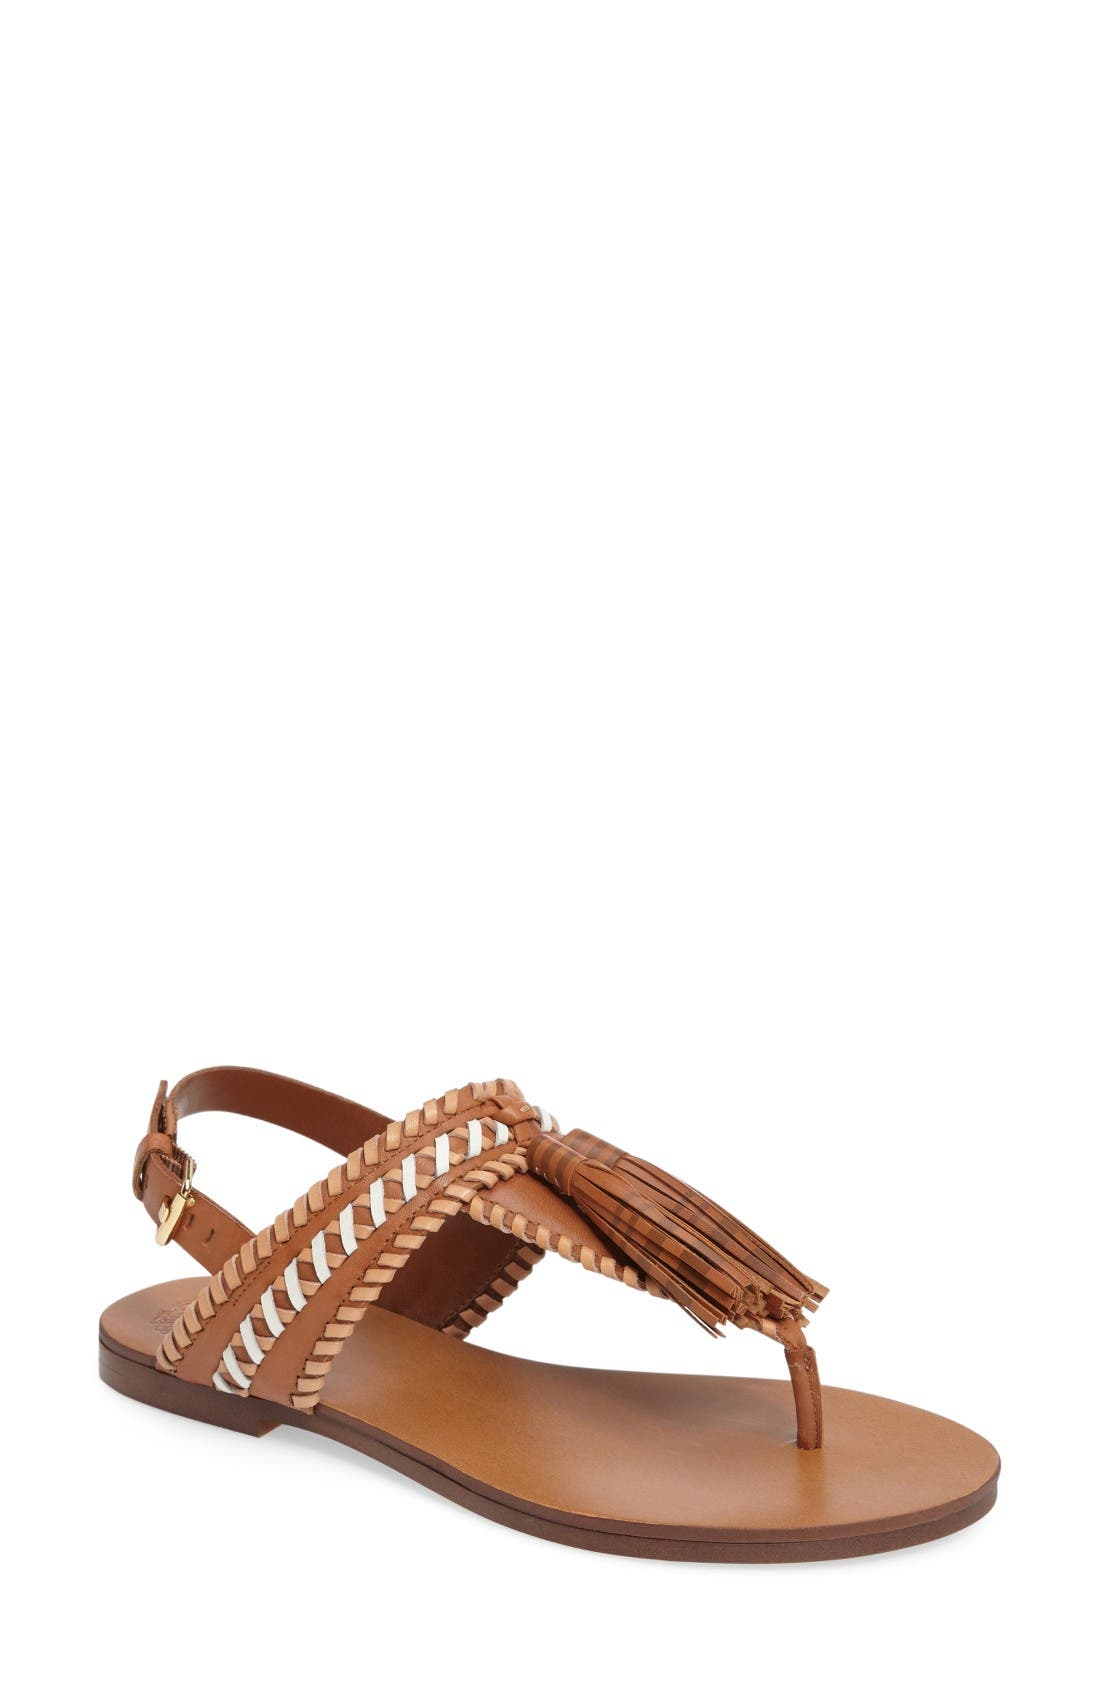 Rebeka Sandal,                             Main thumbnail 1, color,                             Whiskey Bar Leather